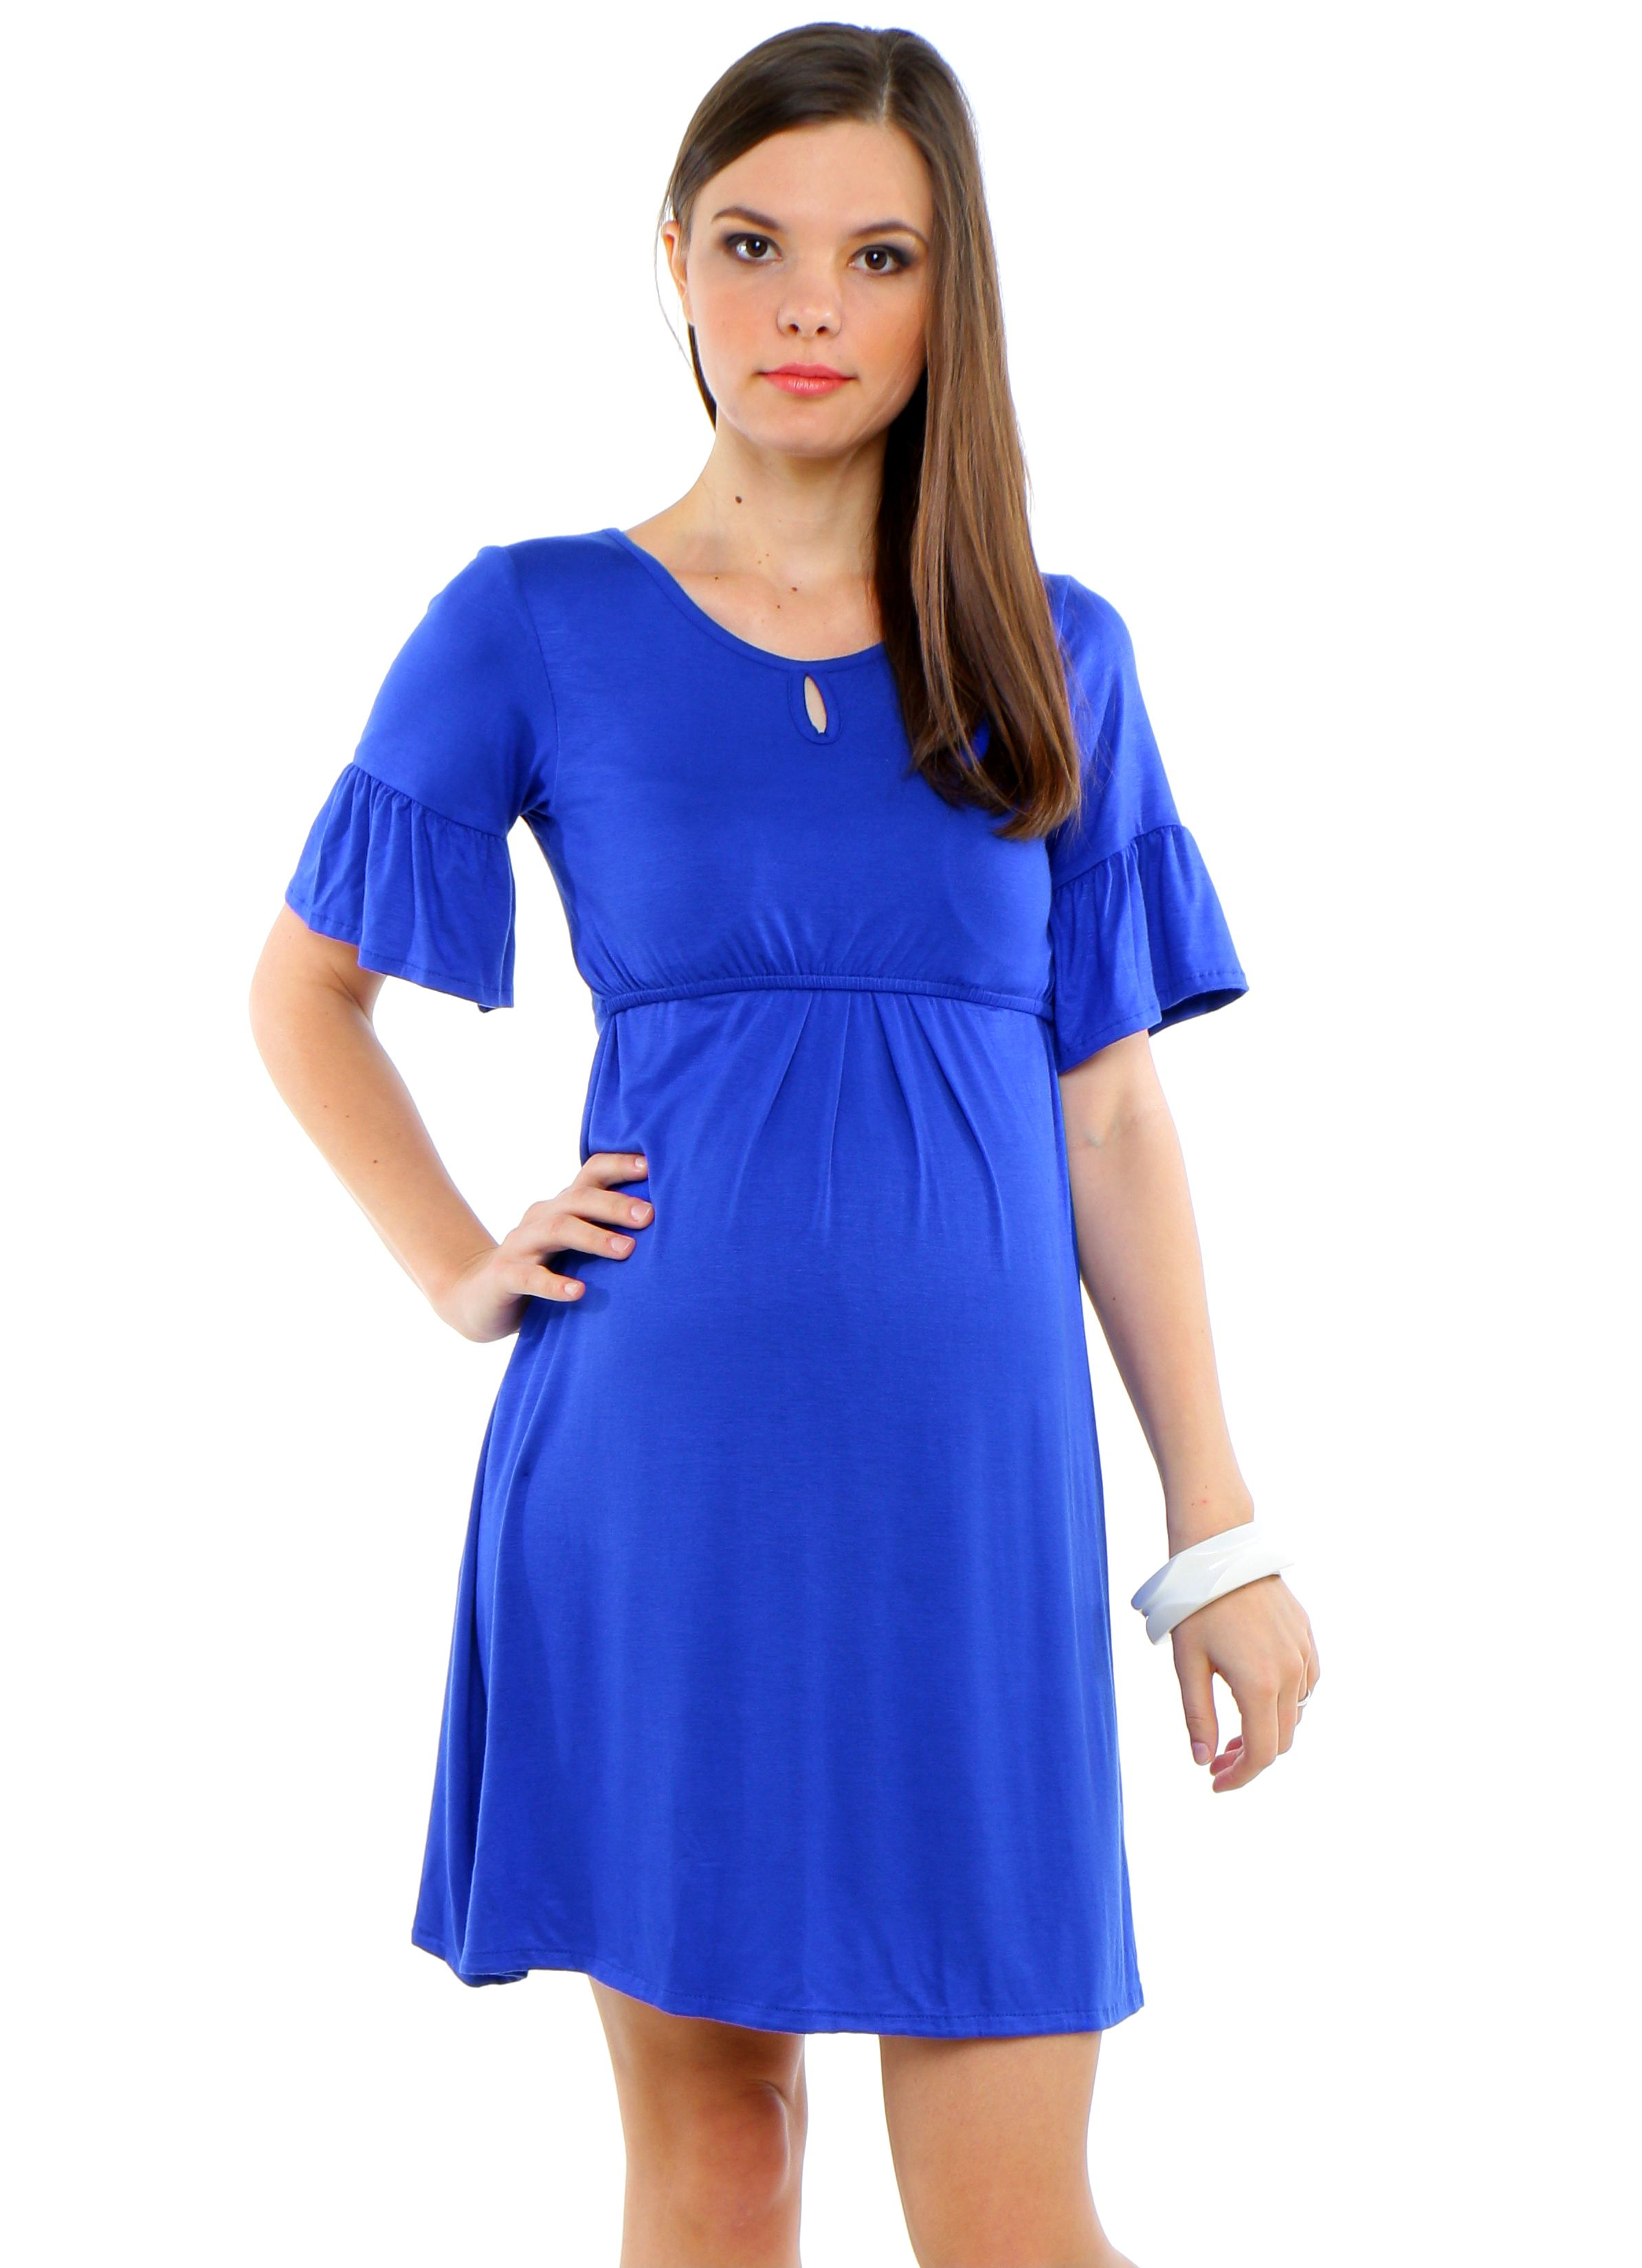 990229bd4d0 Stylish maternity dress from Ubermums Maternity.  maternity  nursing   breastfeeding  dress  style  ubermums